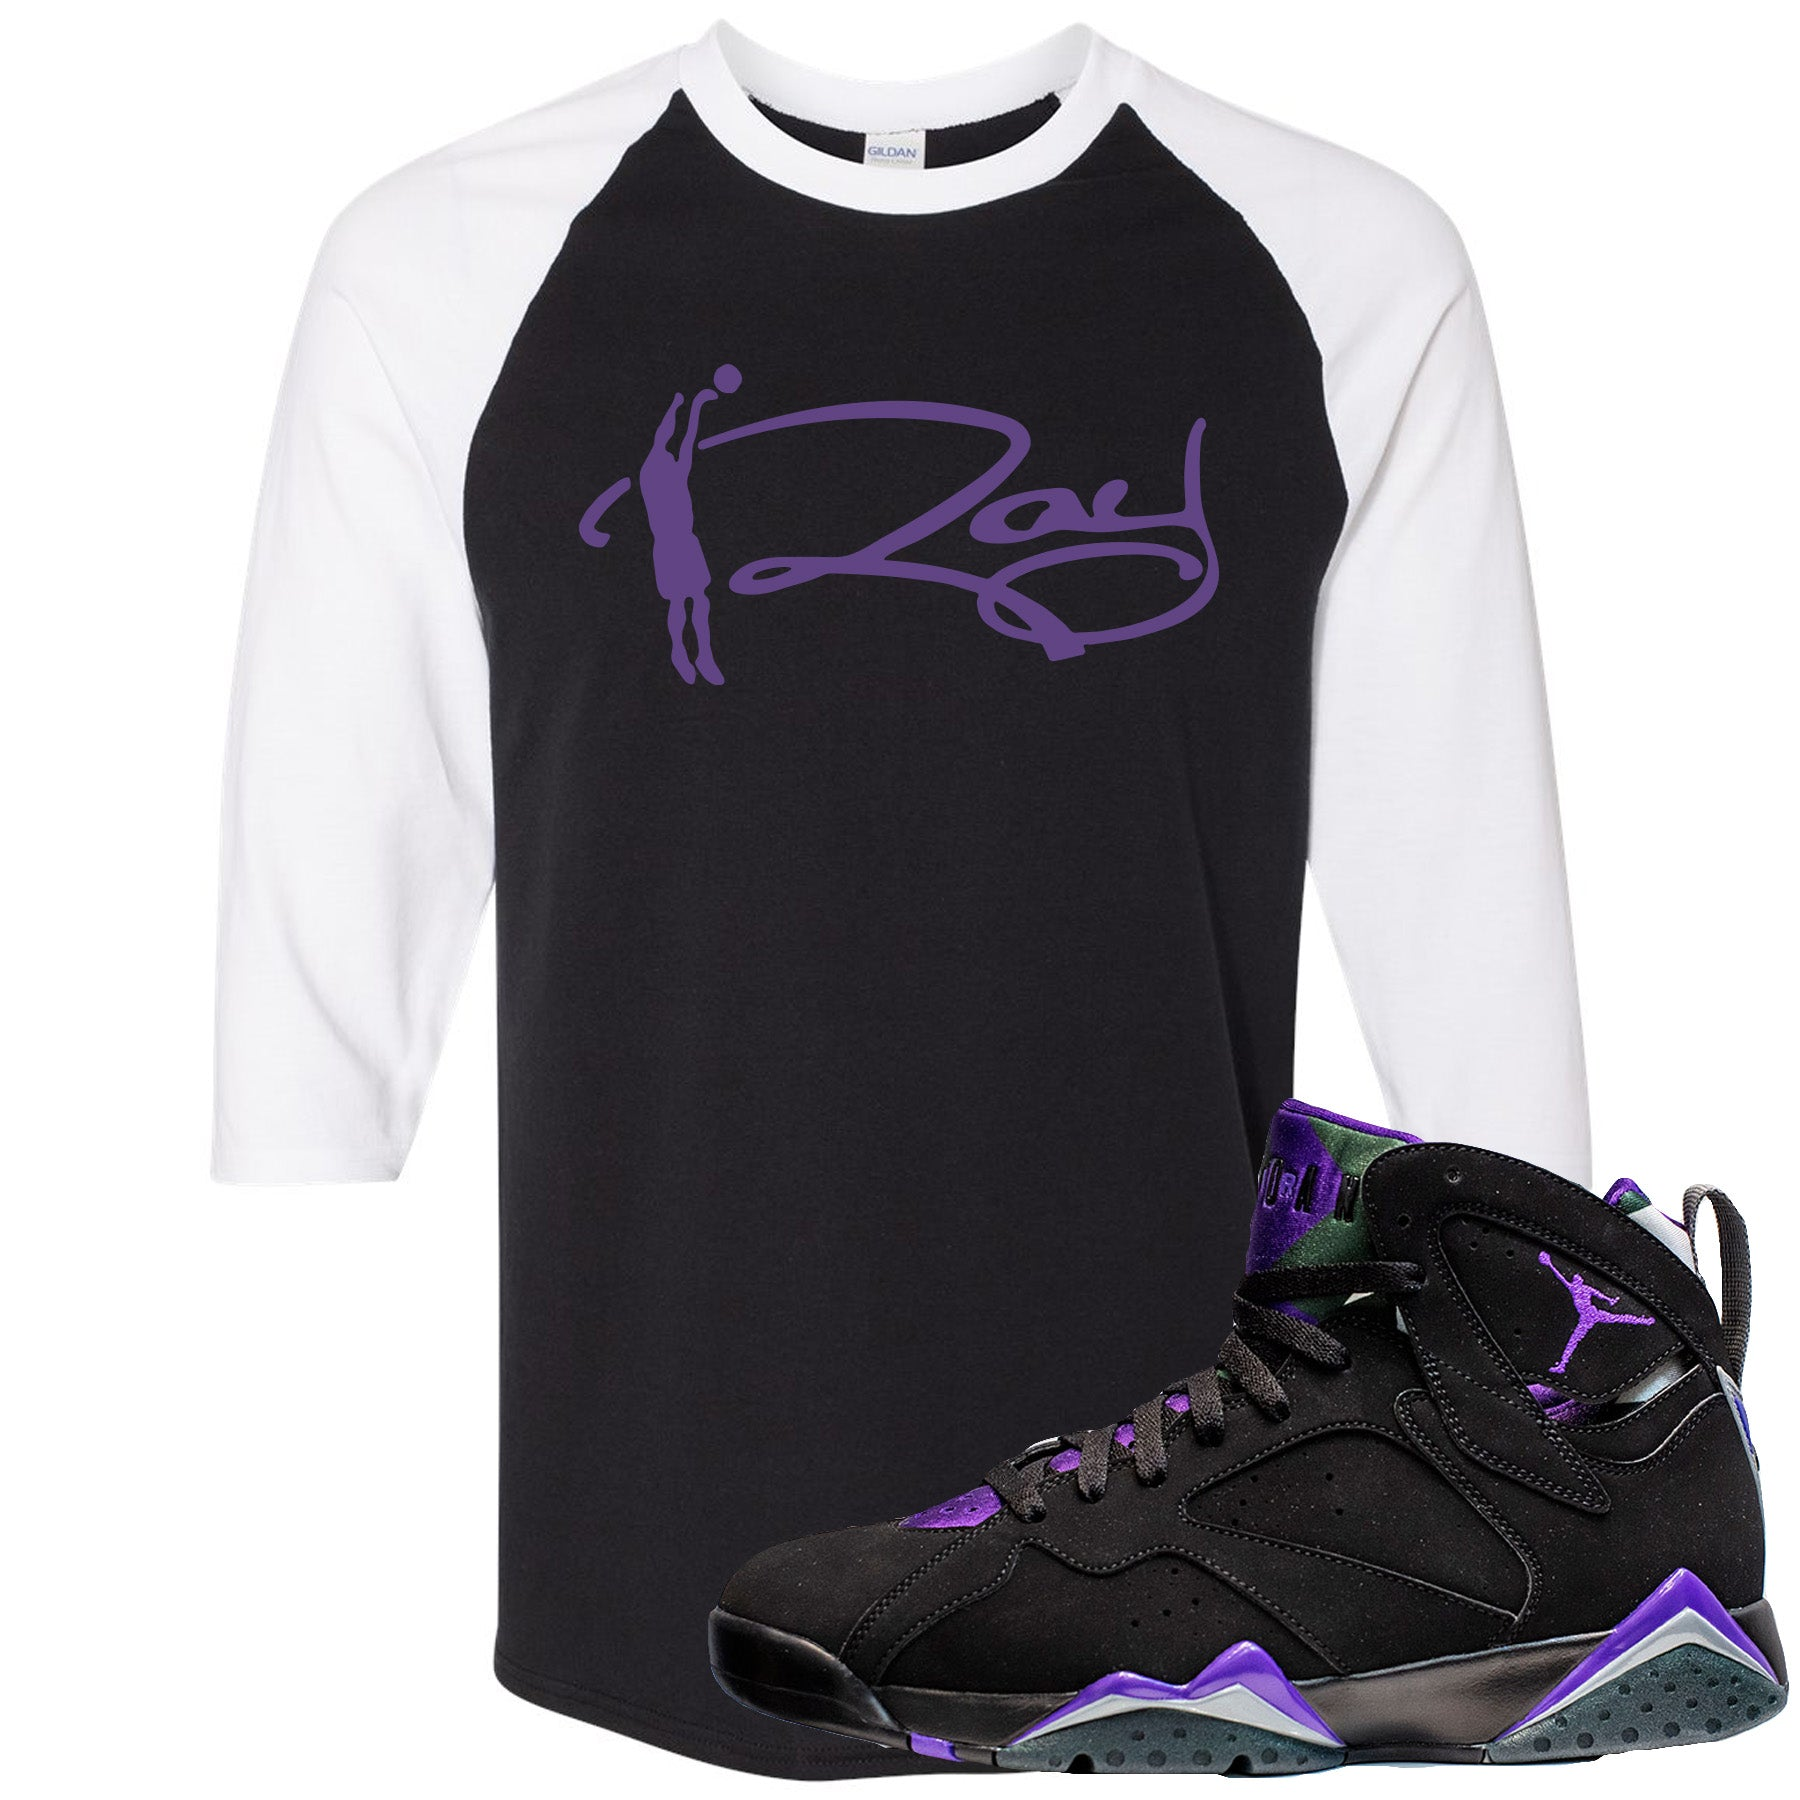 Air Jordan 7 Ray Allen Sneaker Hook Up Ray Signature Black and White Raglan T Shirt